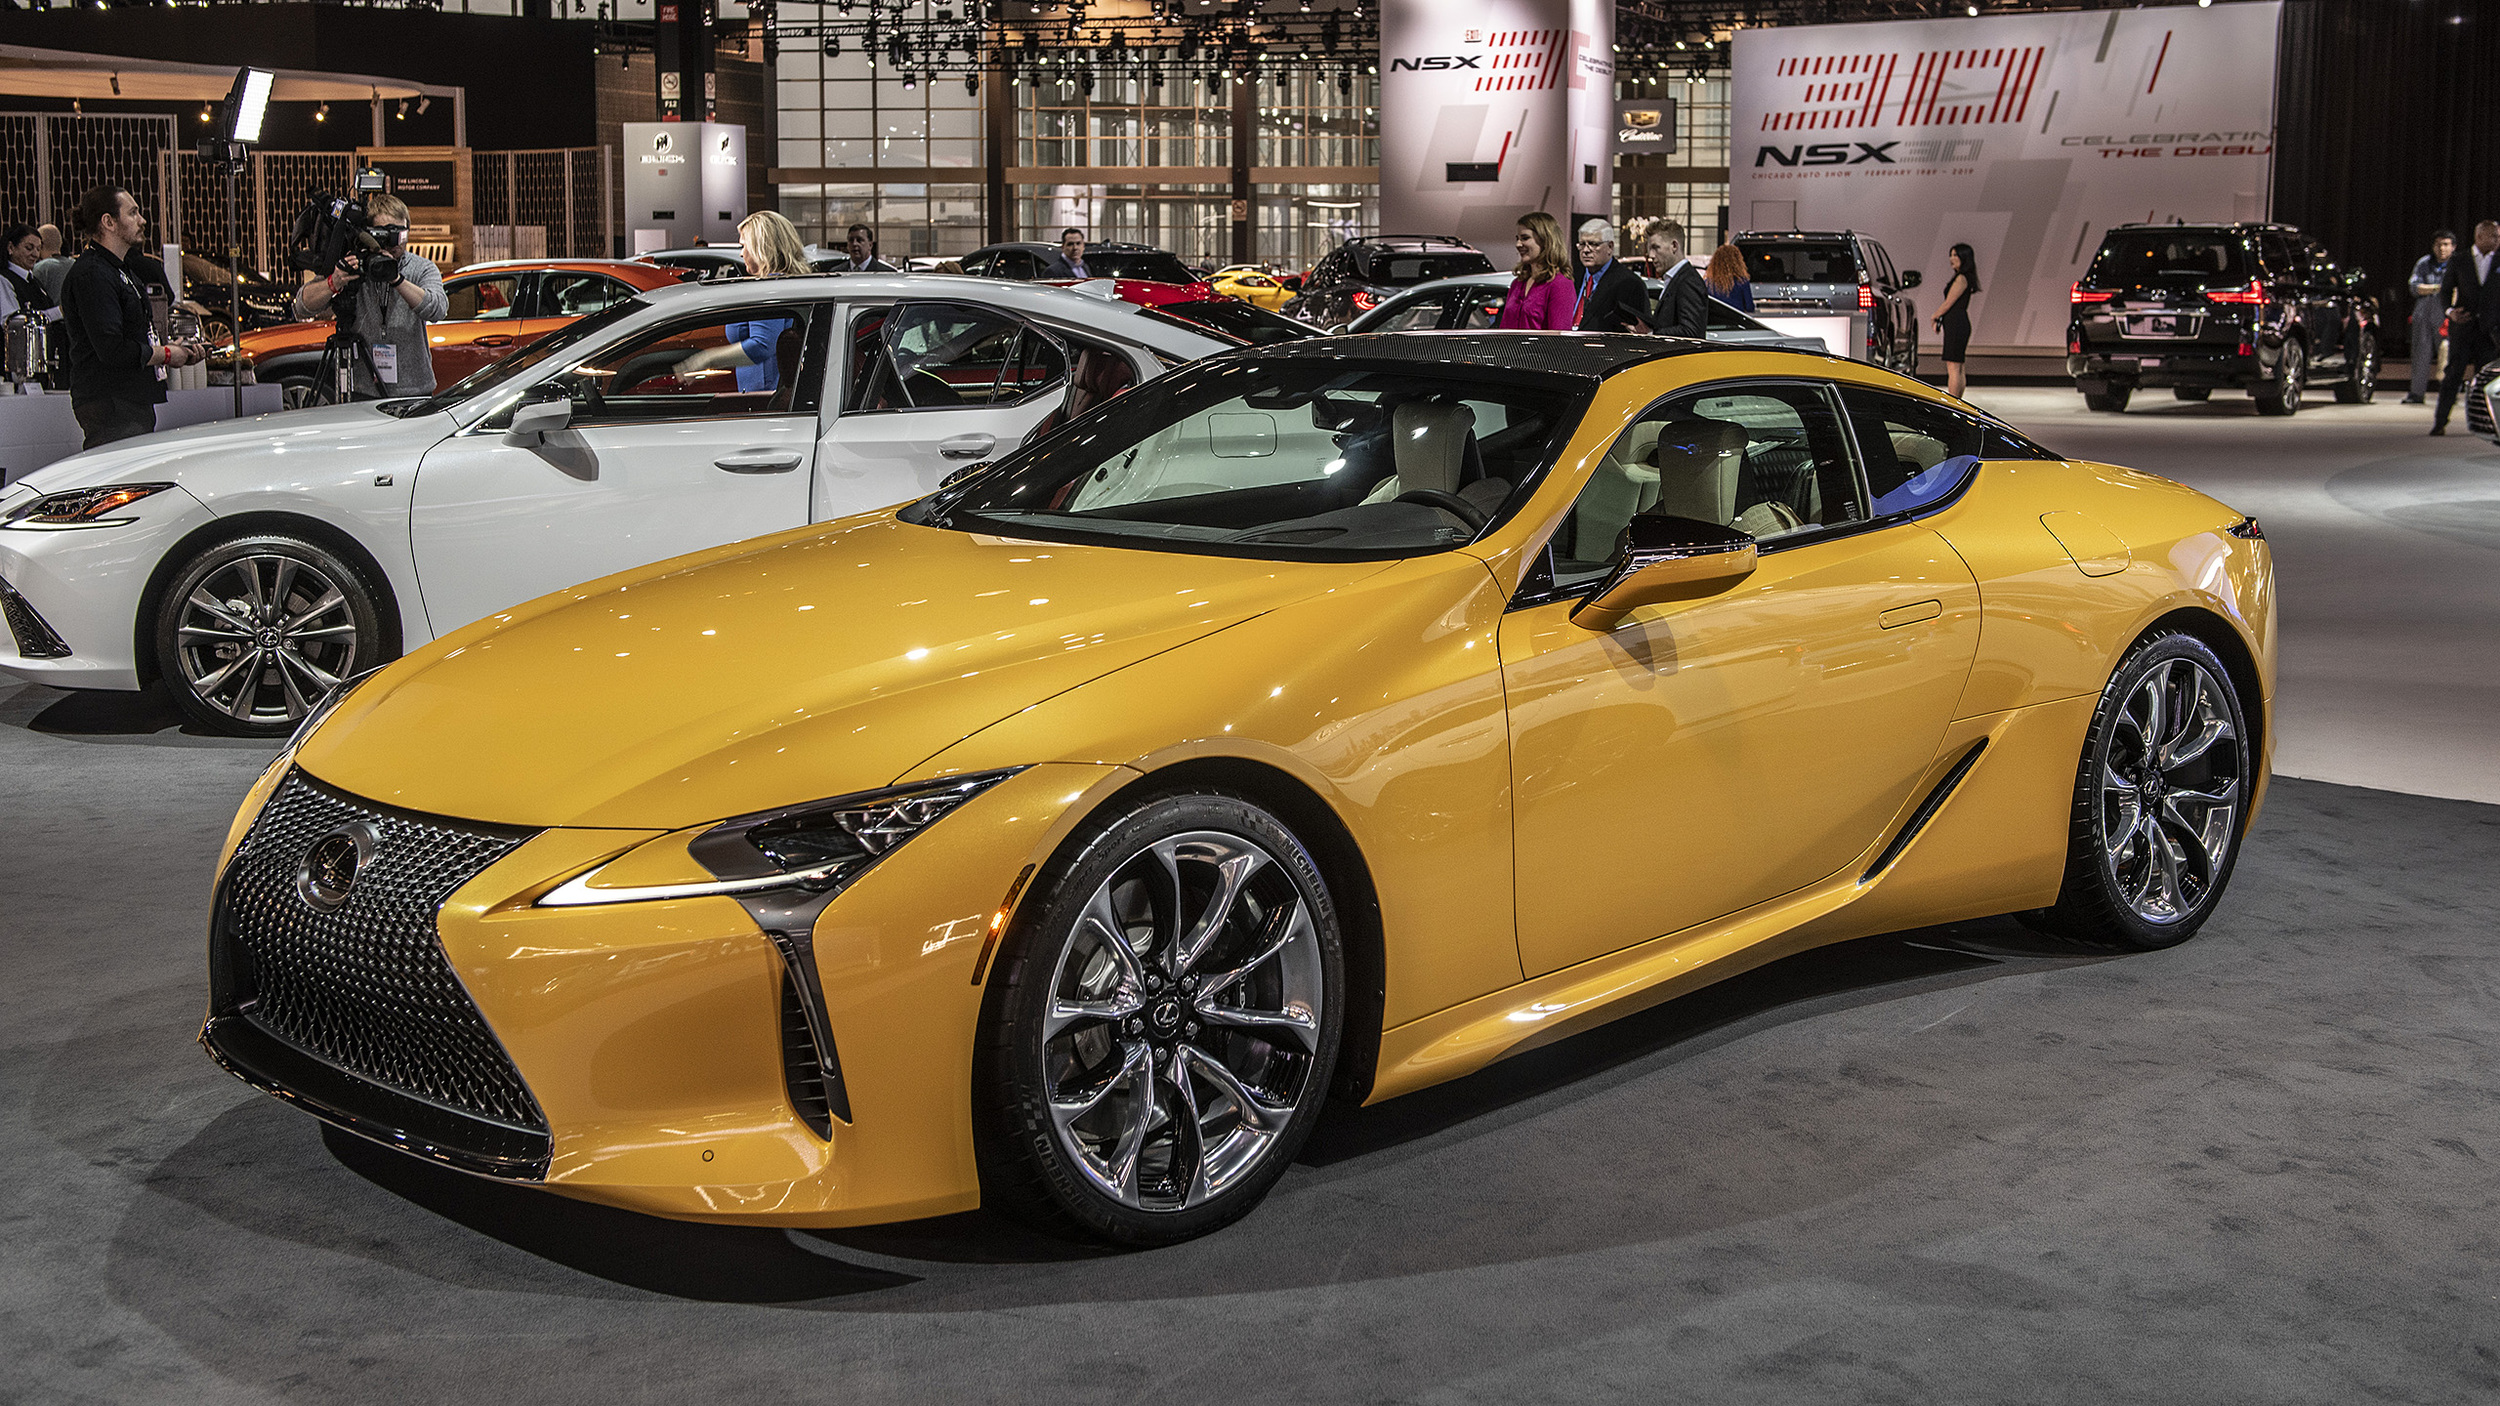 Certified Pre Owned Lexus >> Lexus introduces limited-edition LC500 Inspiration Series in yellow | Autoblog